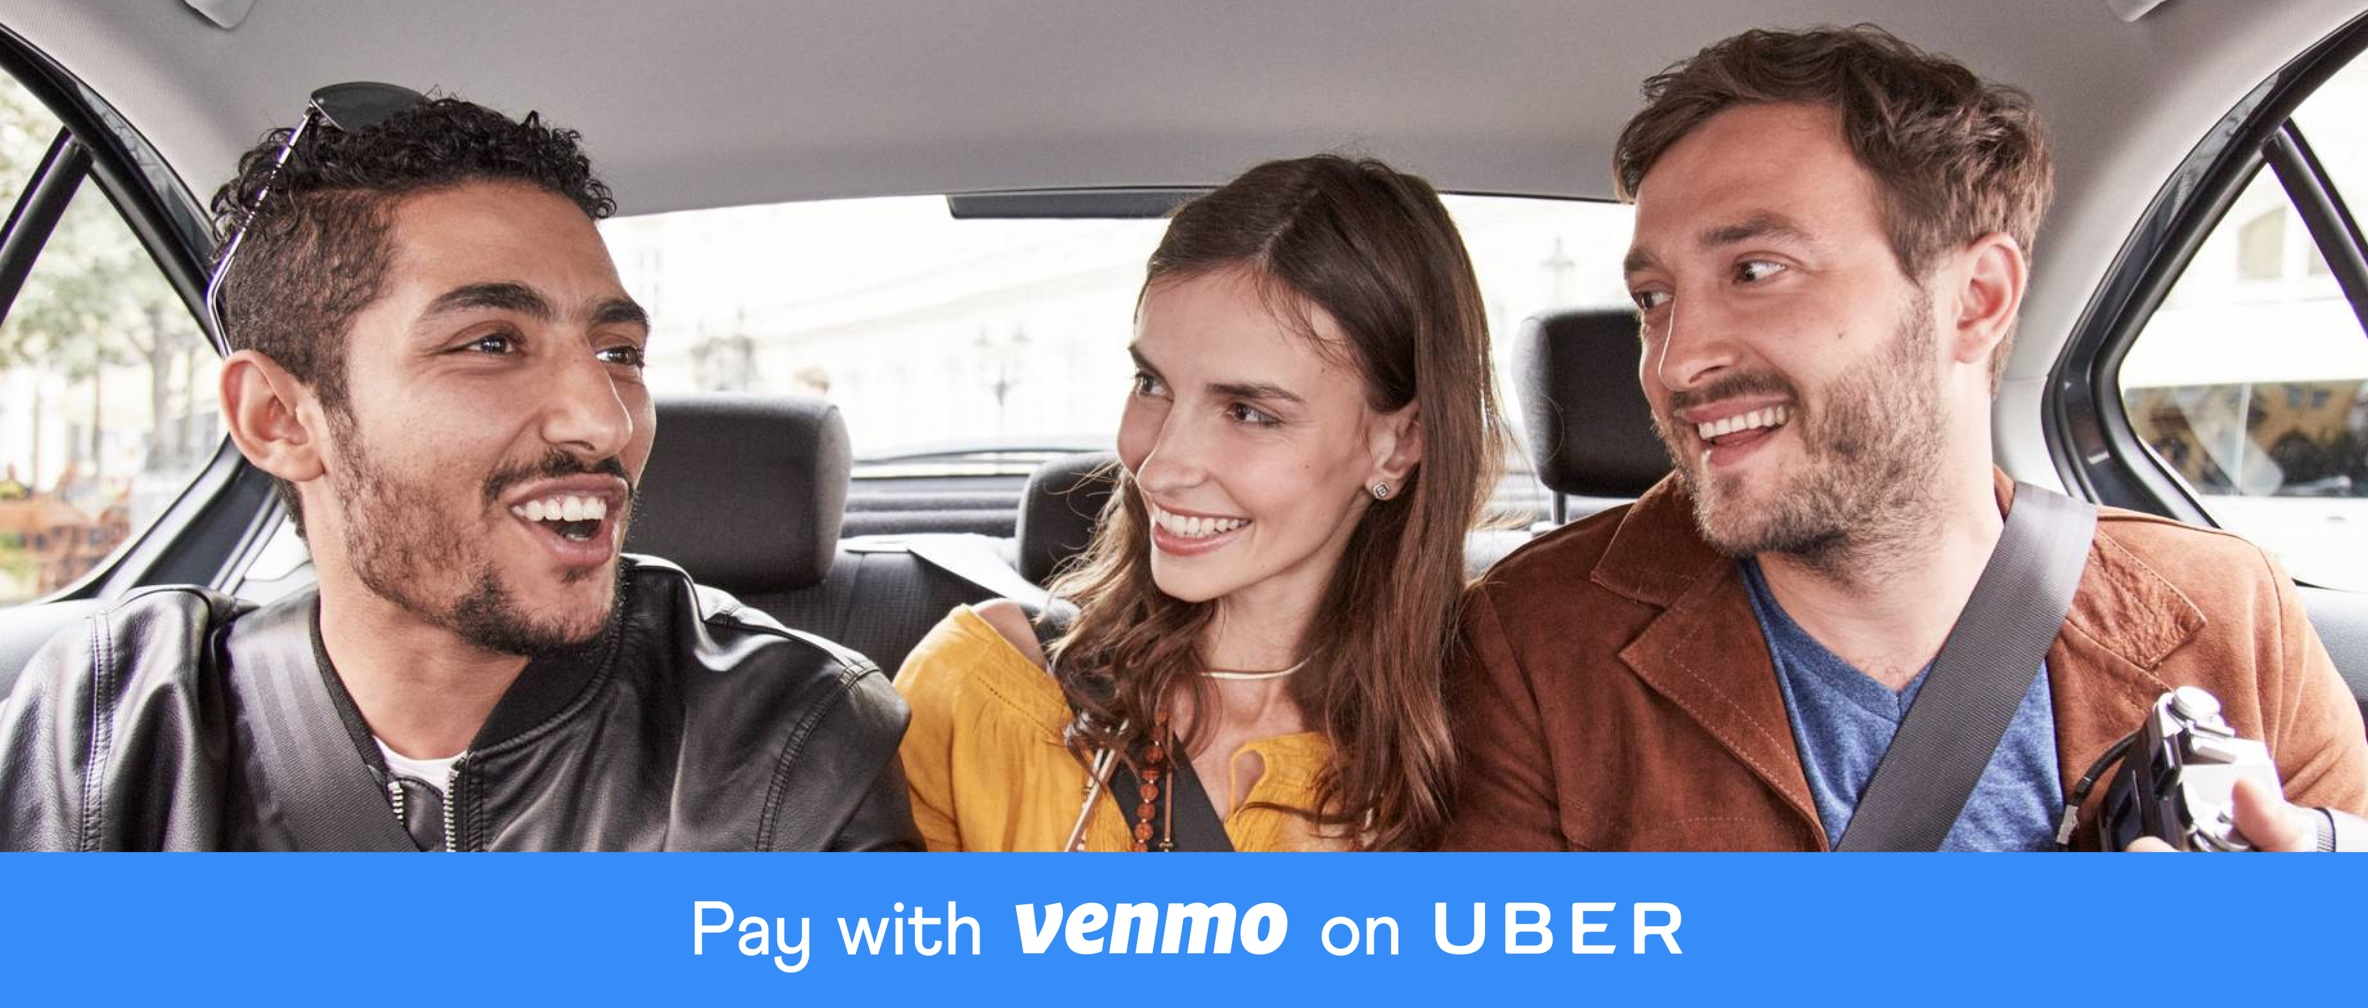 Use Venmo to Pay for Uber and Uber Eats